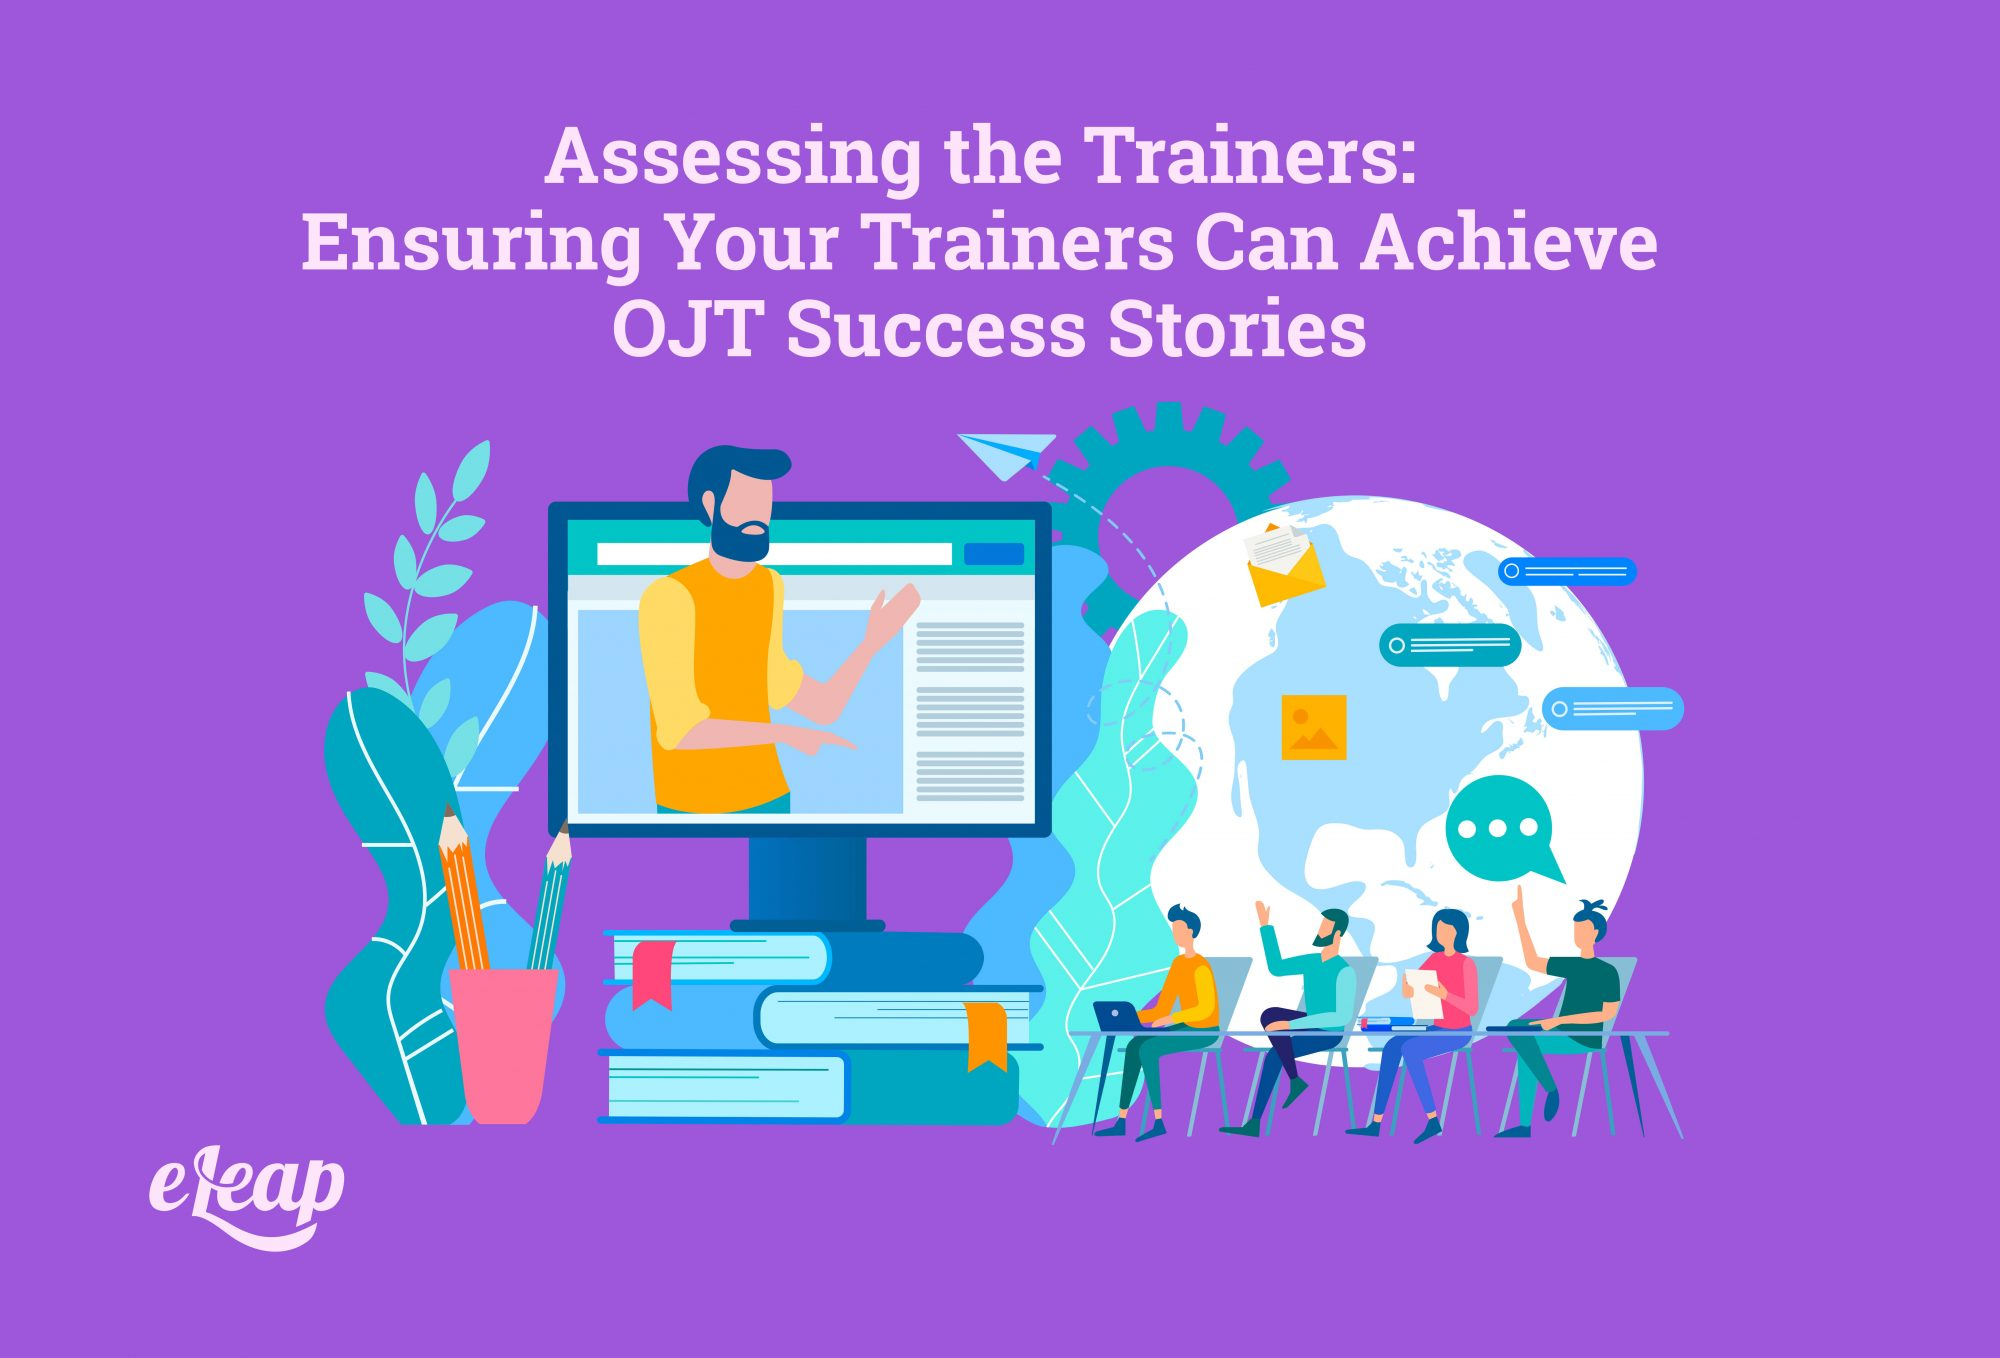 Assessing the Trainers: Ensuring Your Trainers Can Achieve OJT Success Stories